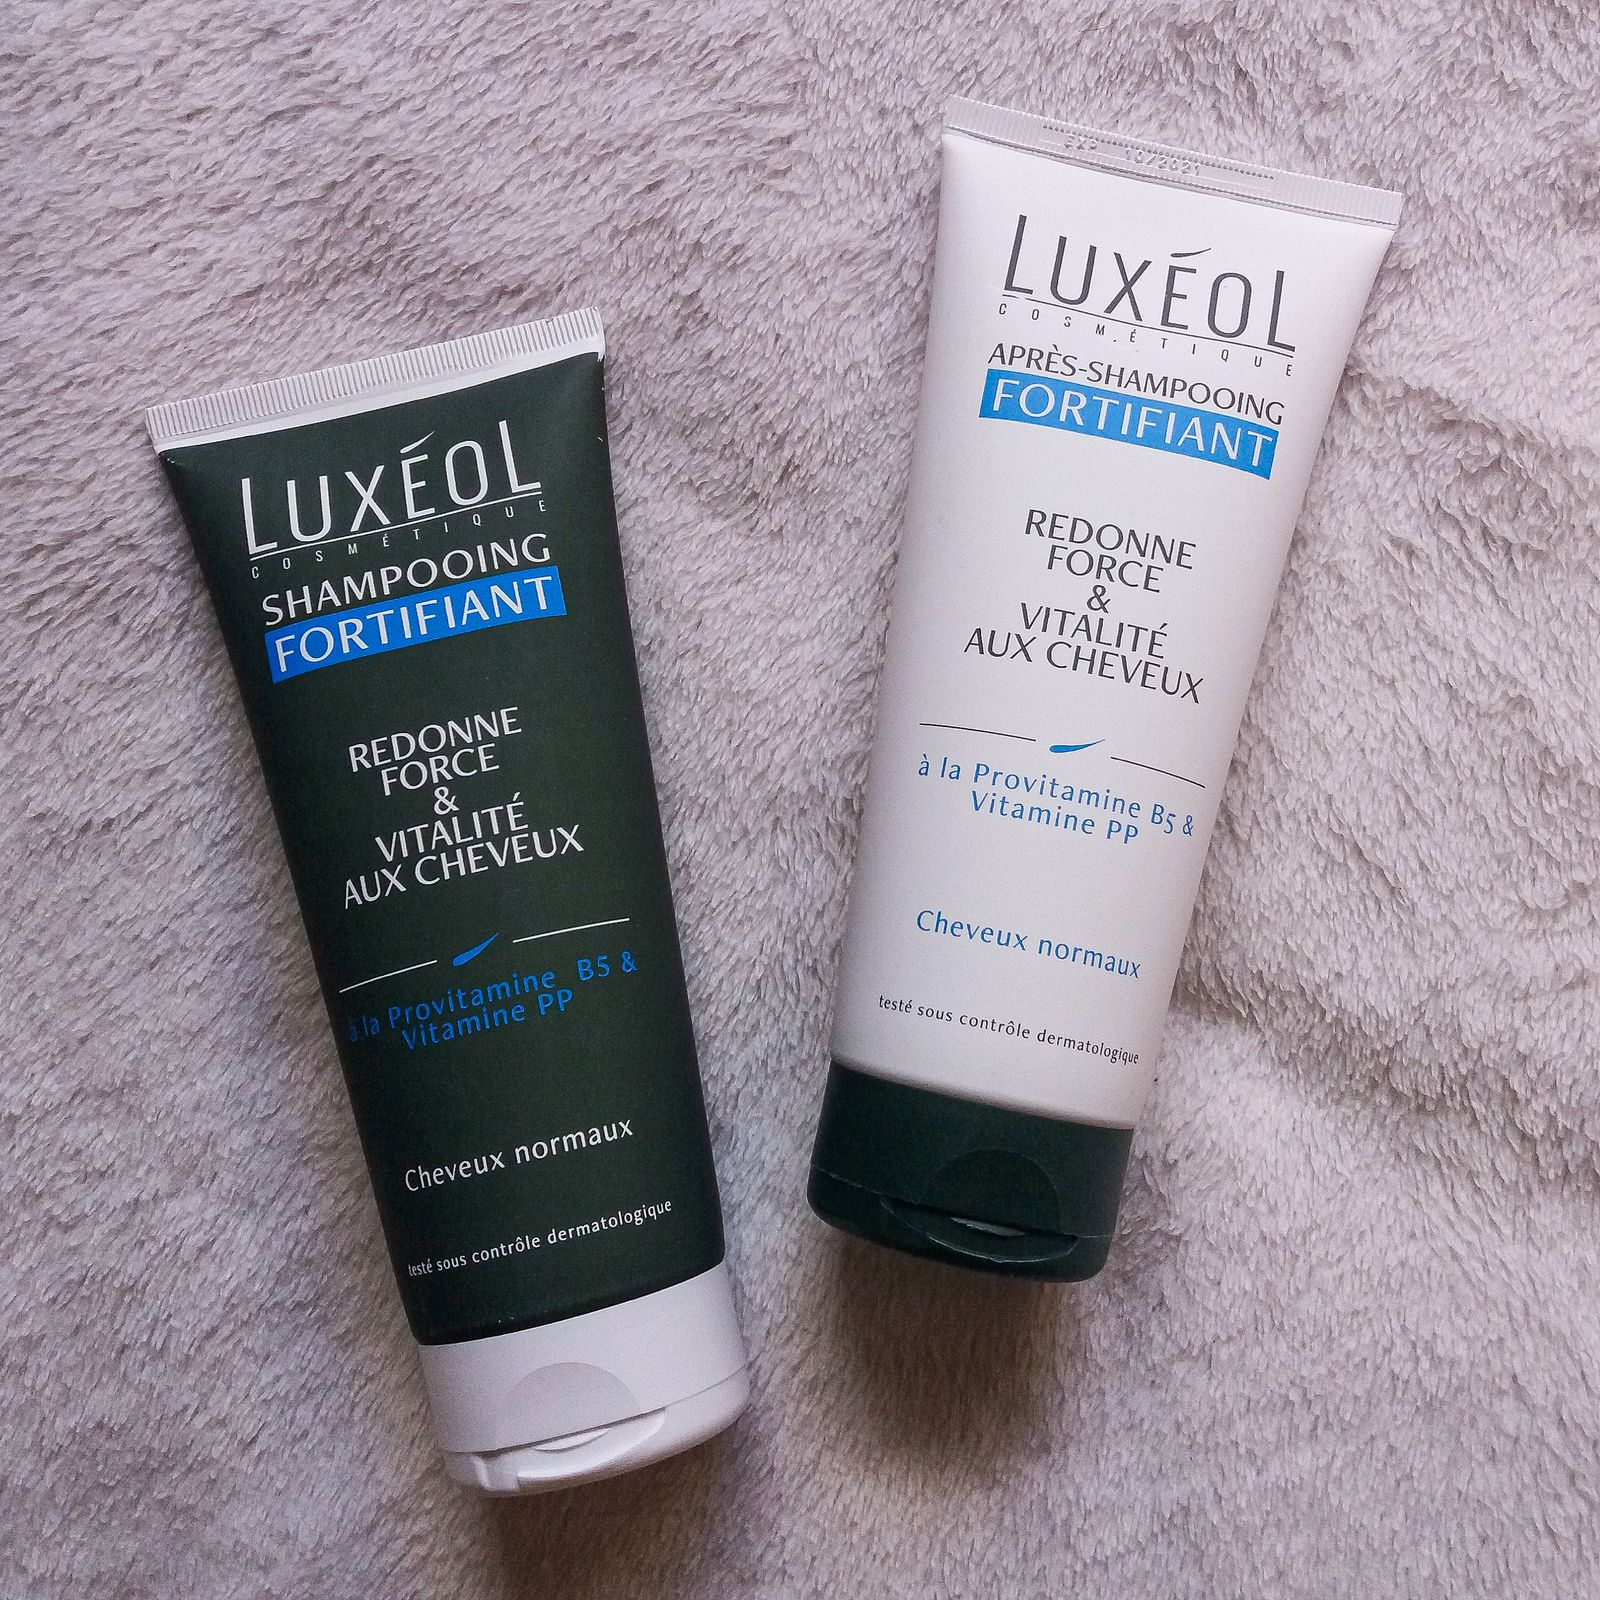 Luxéol, Shampooing et Après-Shampooing, Fortifiant